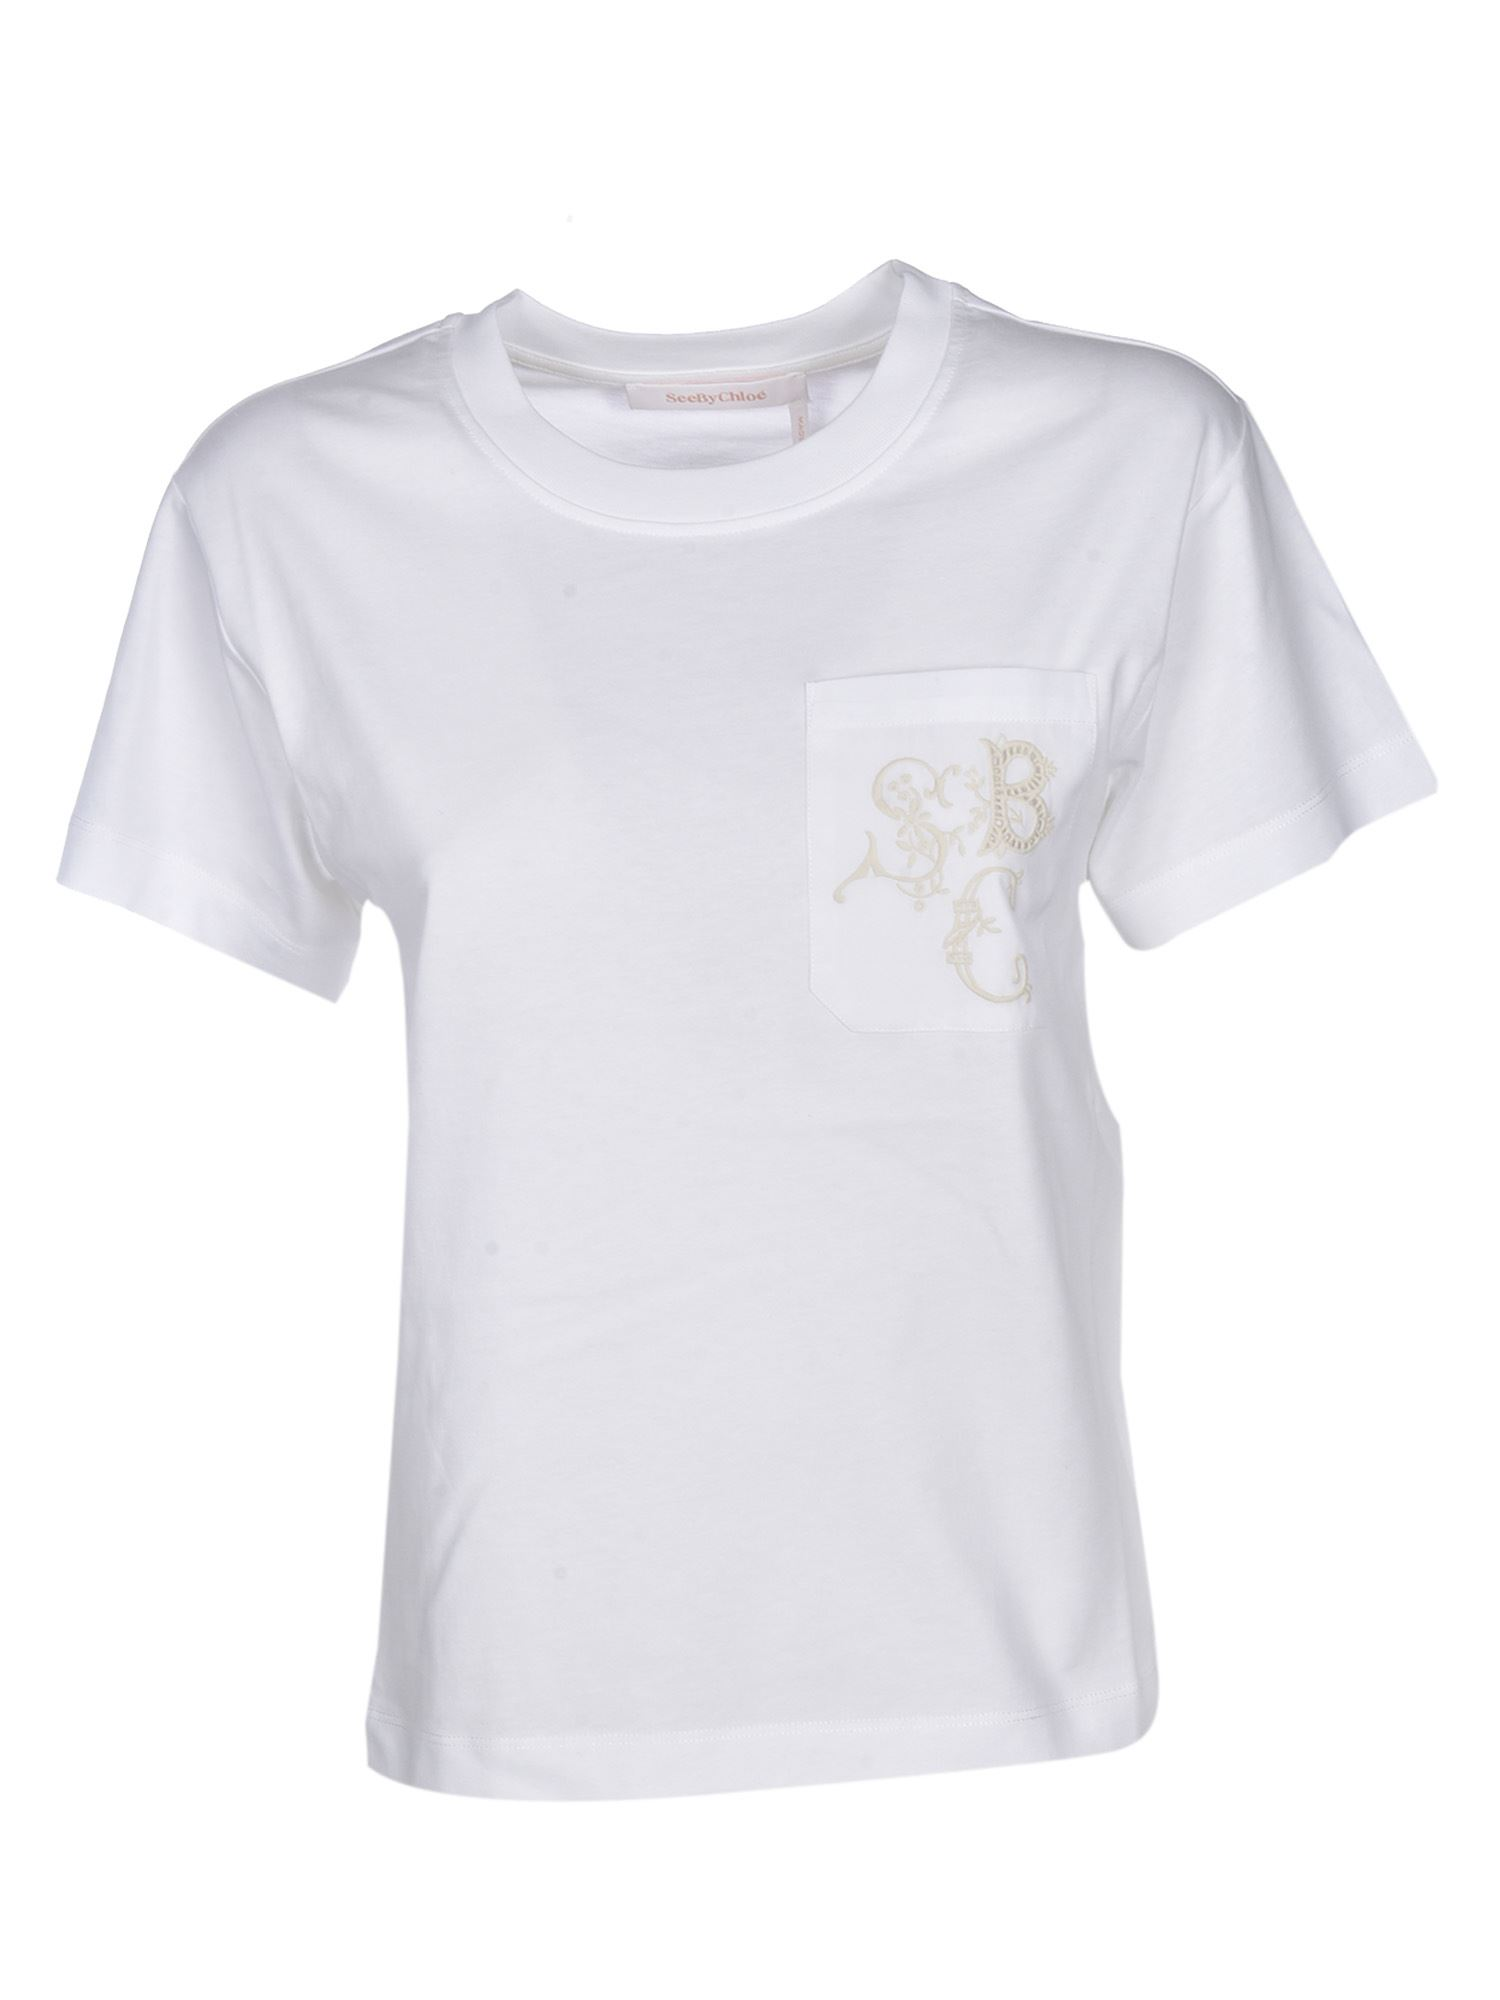 See By Chloé EMBROIDERED LOGO POCKET T-SHIRT IN WHITE